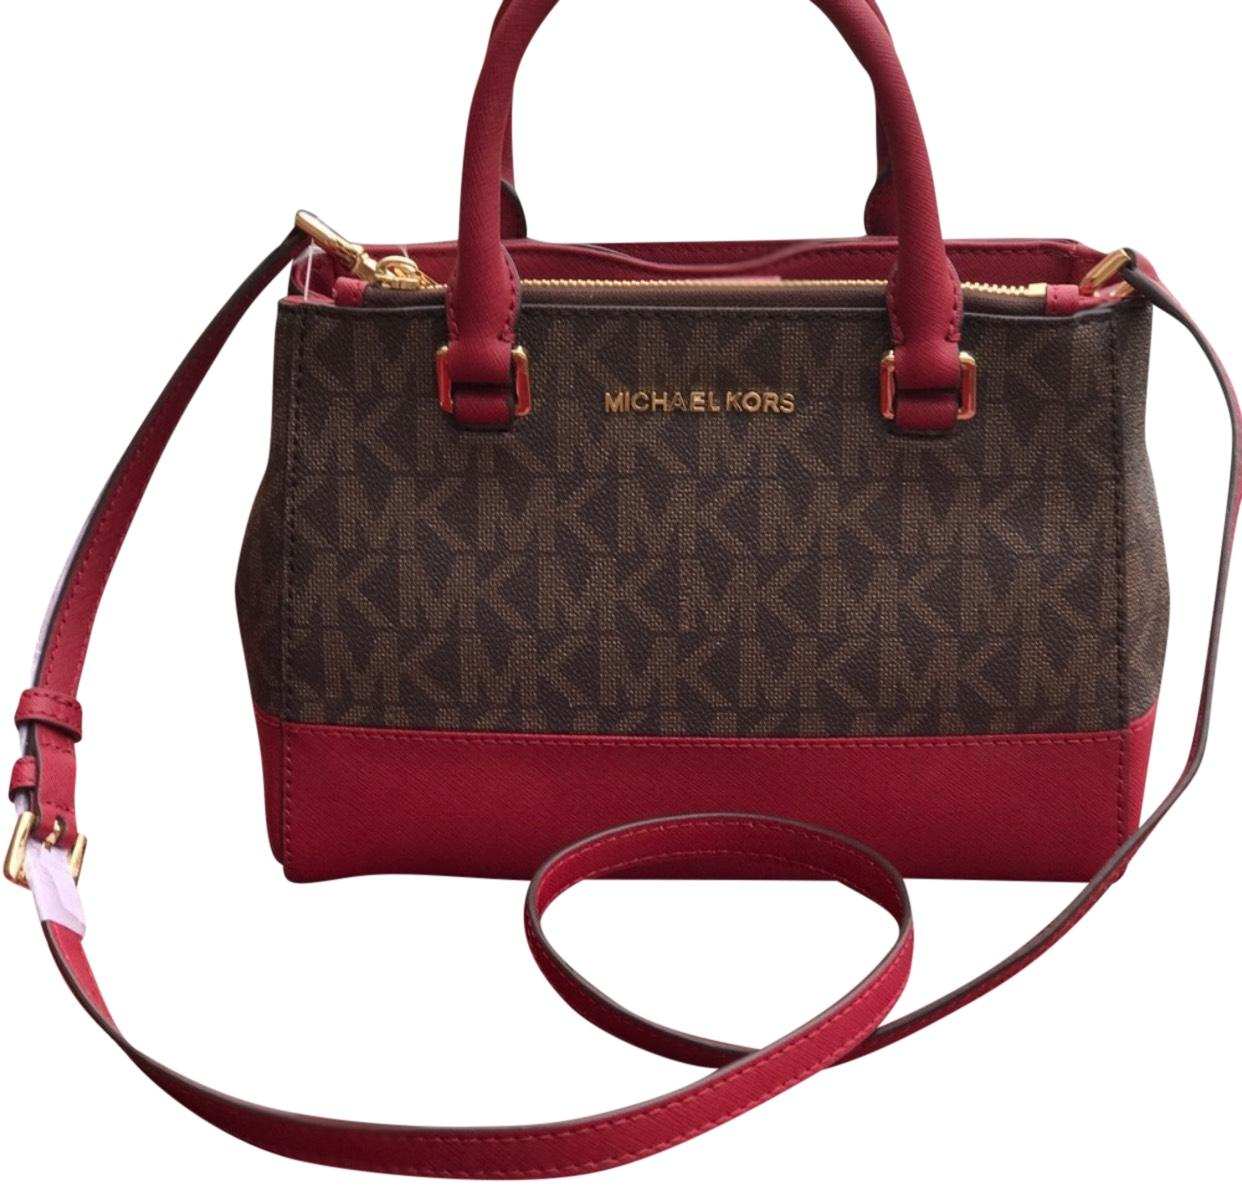 e290ced93688 ... bag 80cb9 533a3 top quality michael kors satchel in brown and cherry  85b63 3ce9b ...